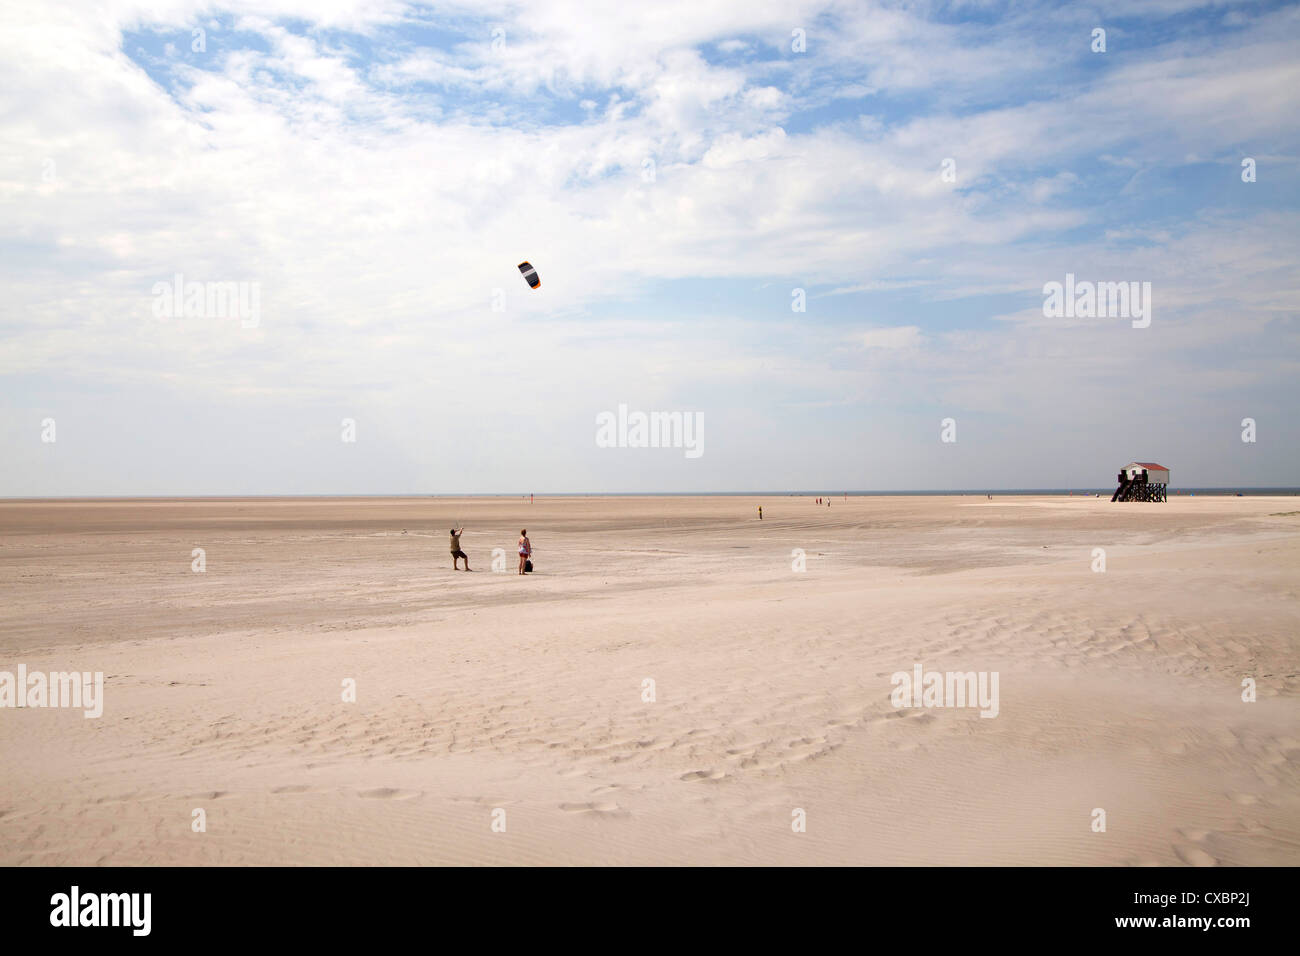 The long wide sandy beach of St. Peter-Ording, district of North Friesland, Schleswig-Holstein, Germany, Europe - Stock Image